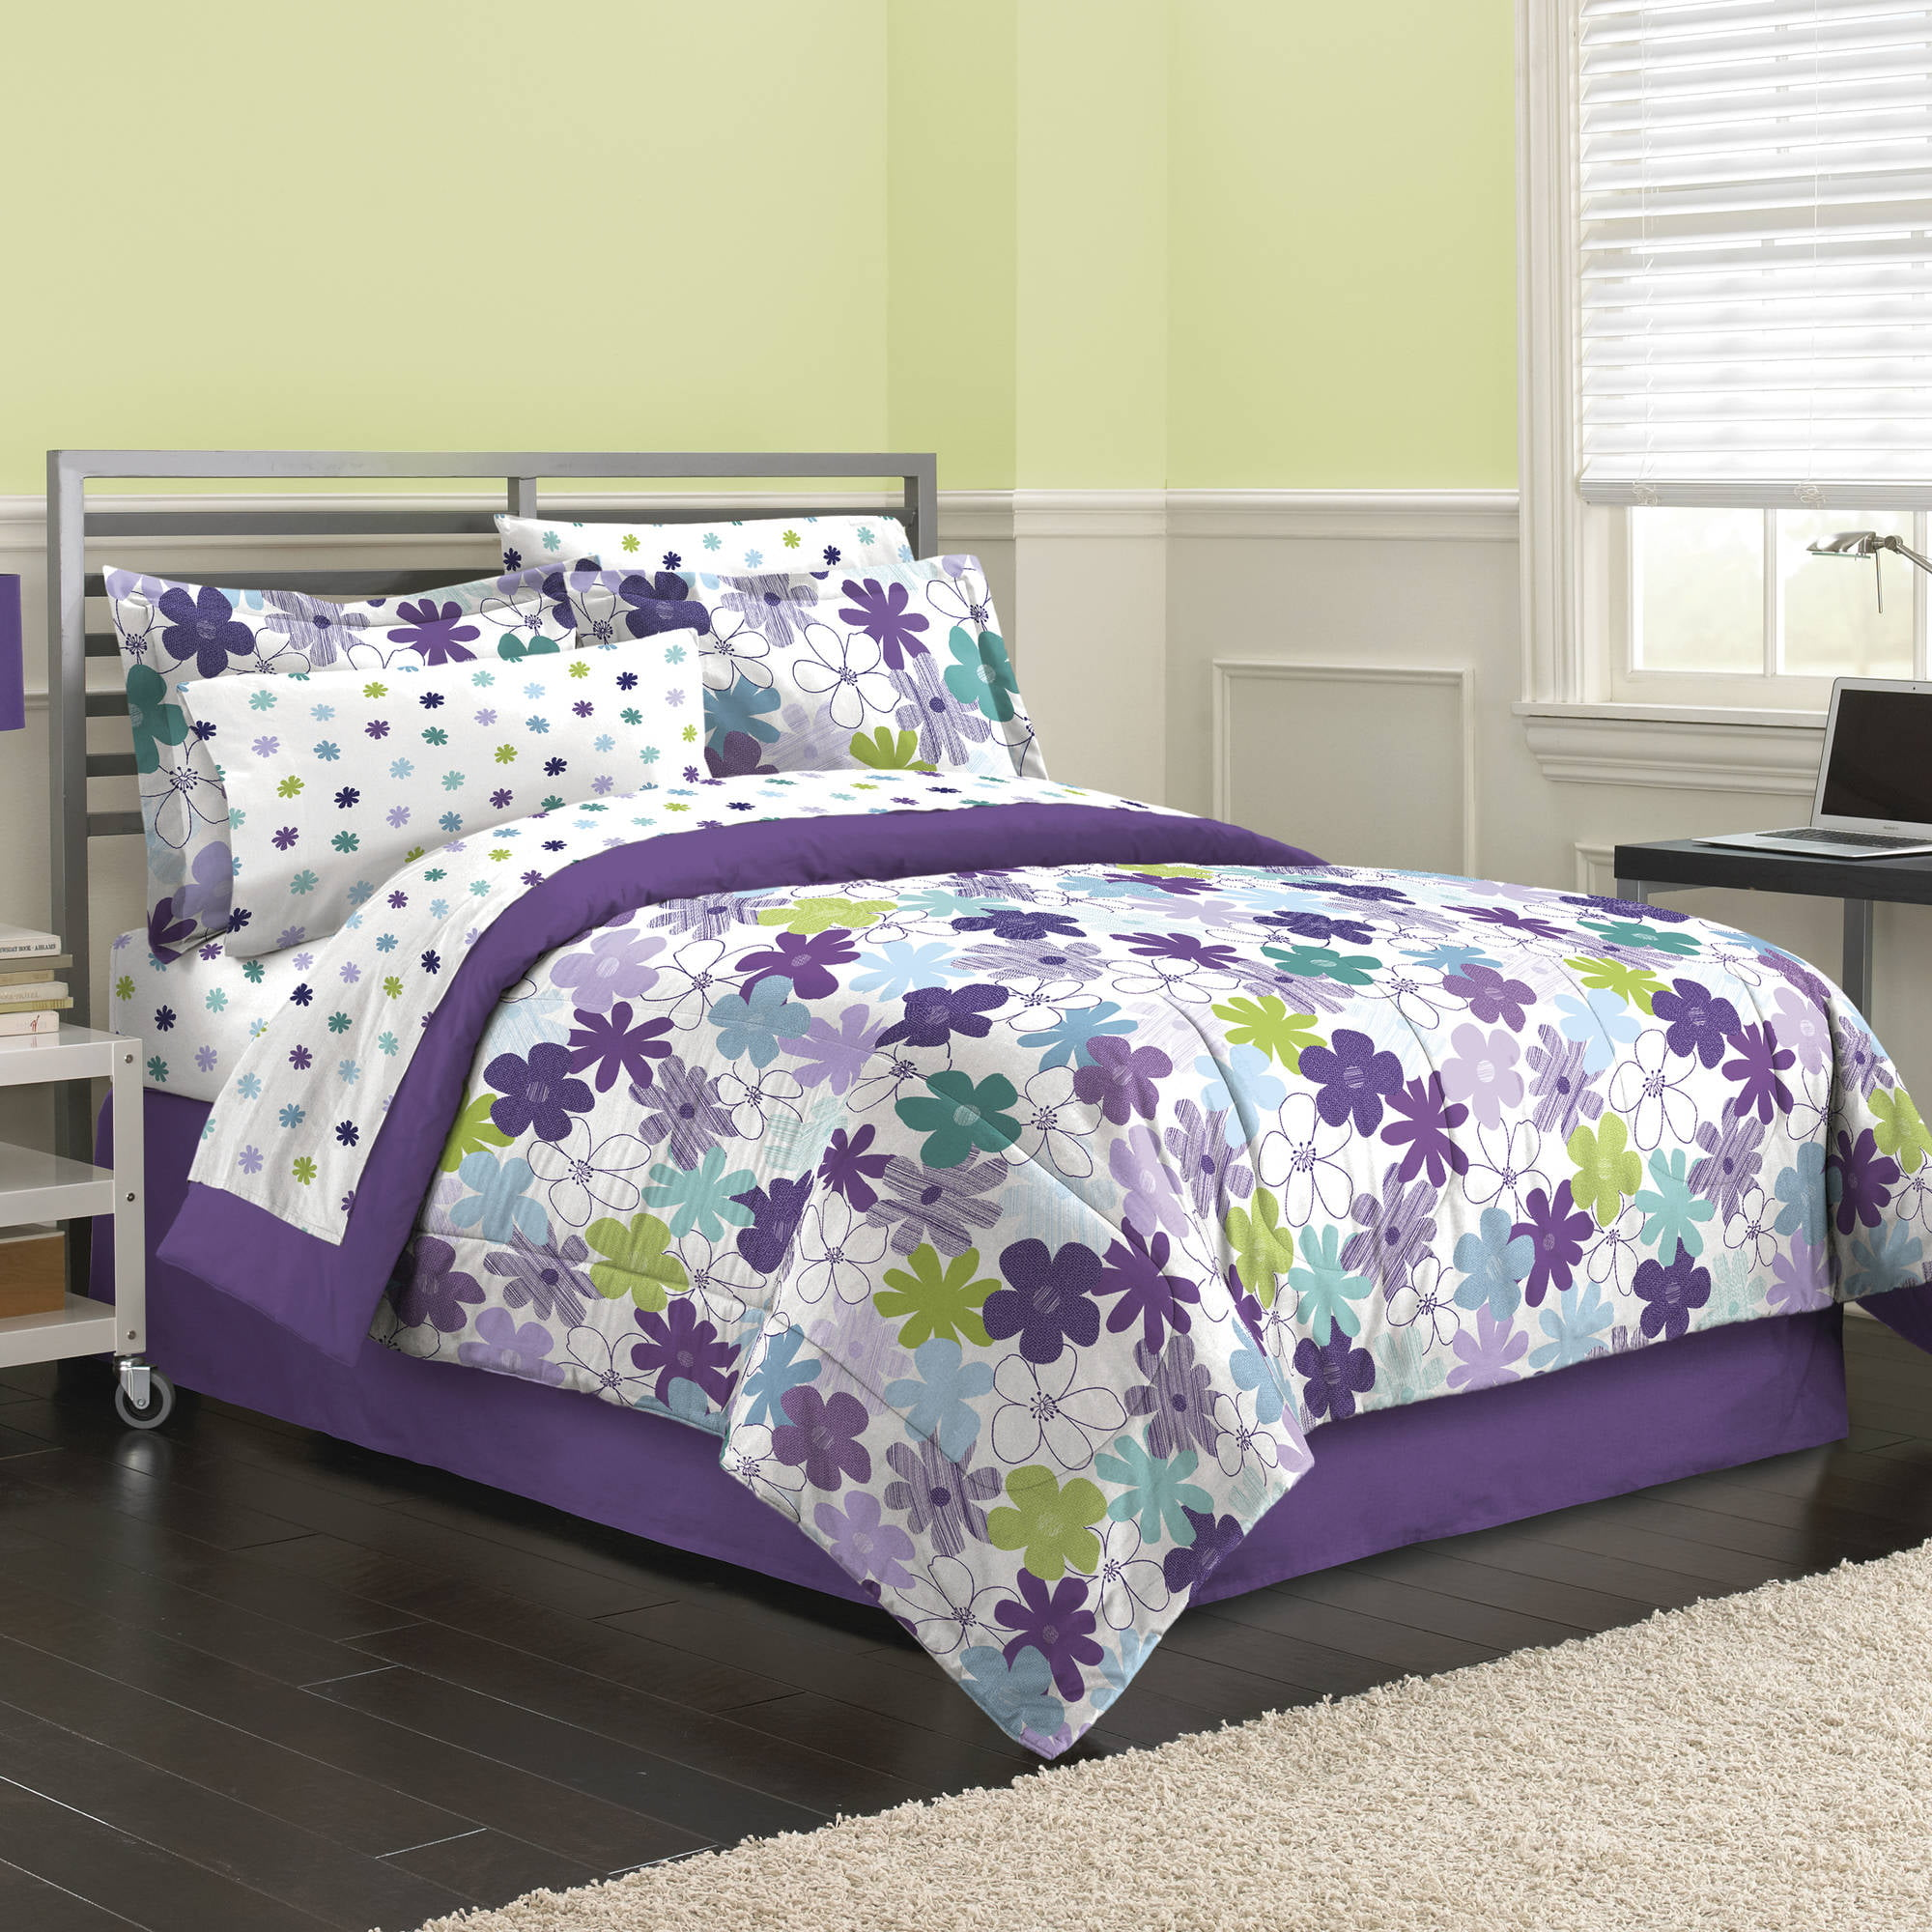 co setsing photo queen bedding aetherair california dark comforter asli dreaded bed sheets purple solid size